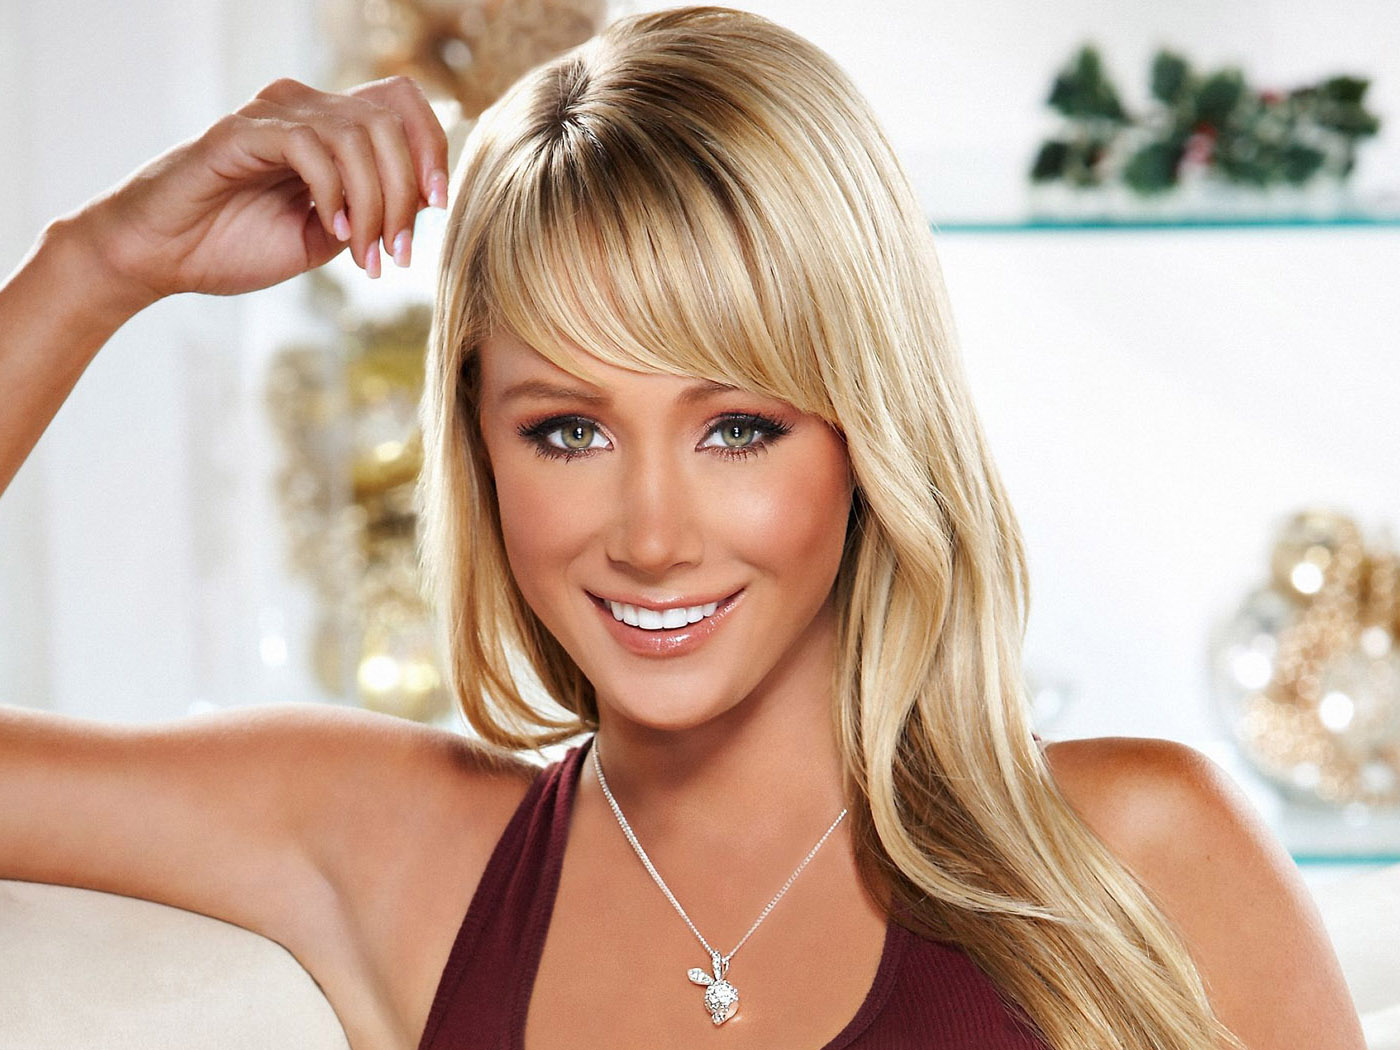 Sey Spicy Sara Jean Underwood Hd Wallpapers Pictures